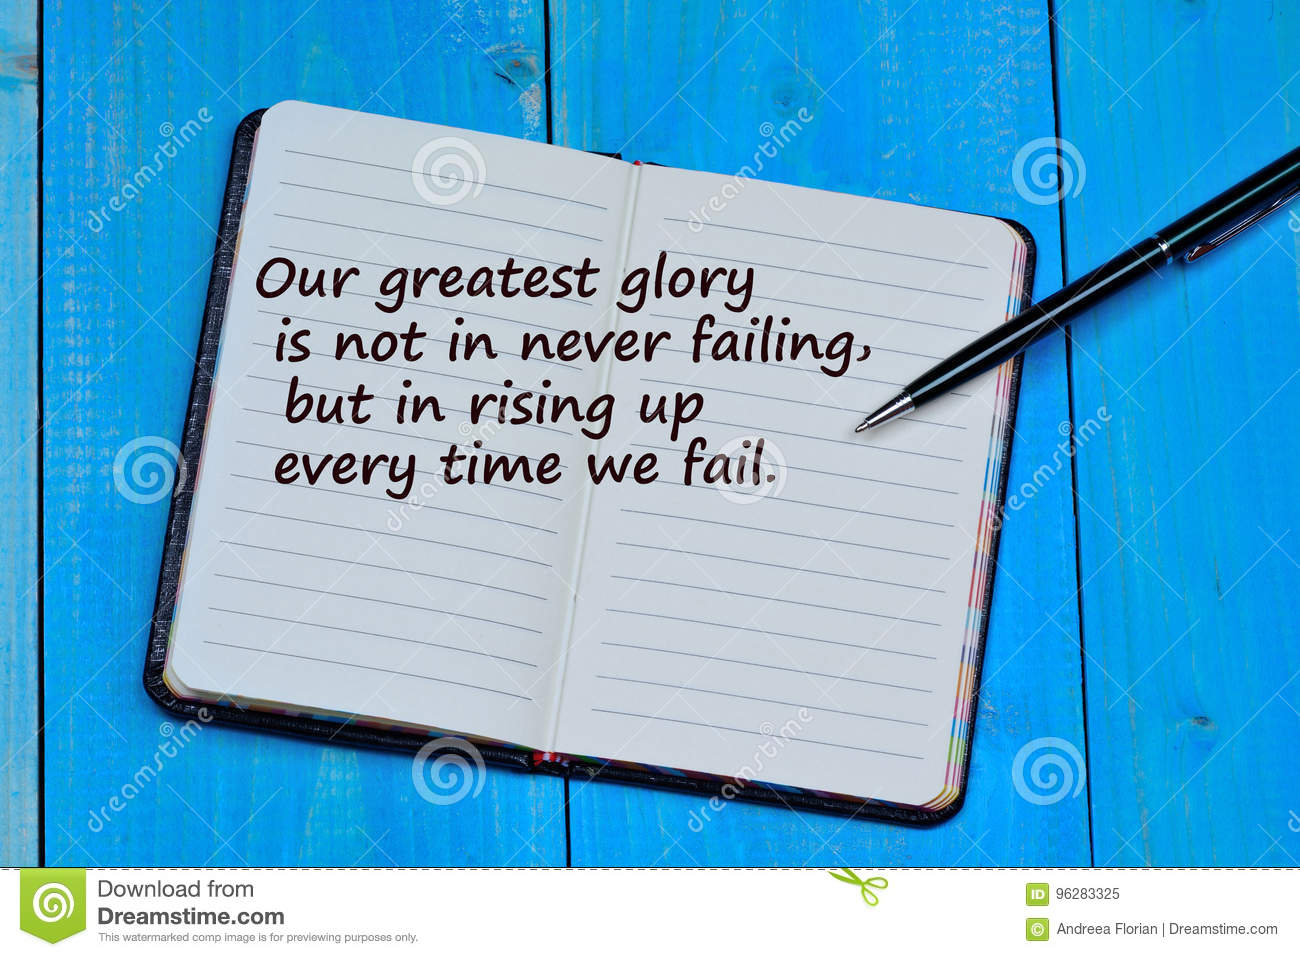 Our greatest glory is not in never failing but in rising uo every time we fail